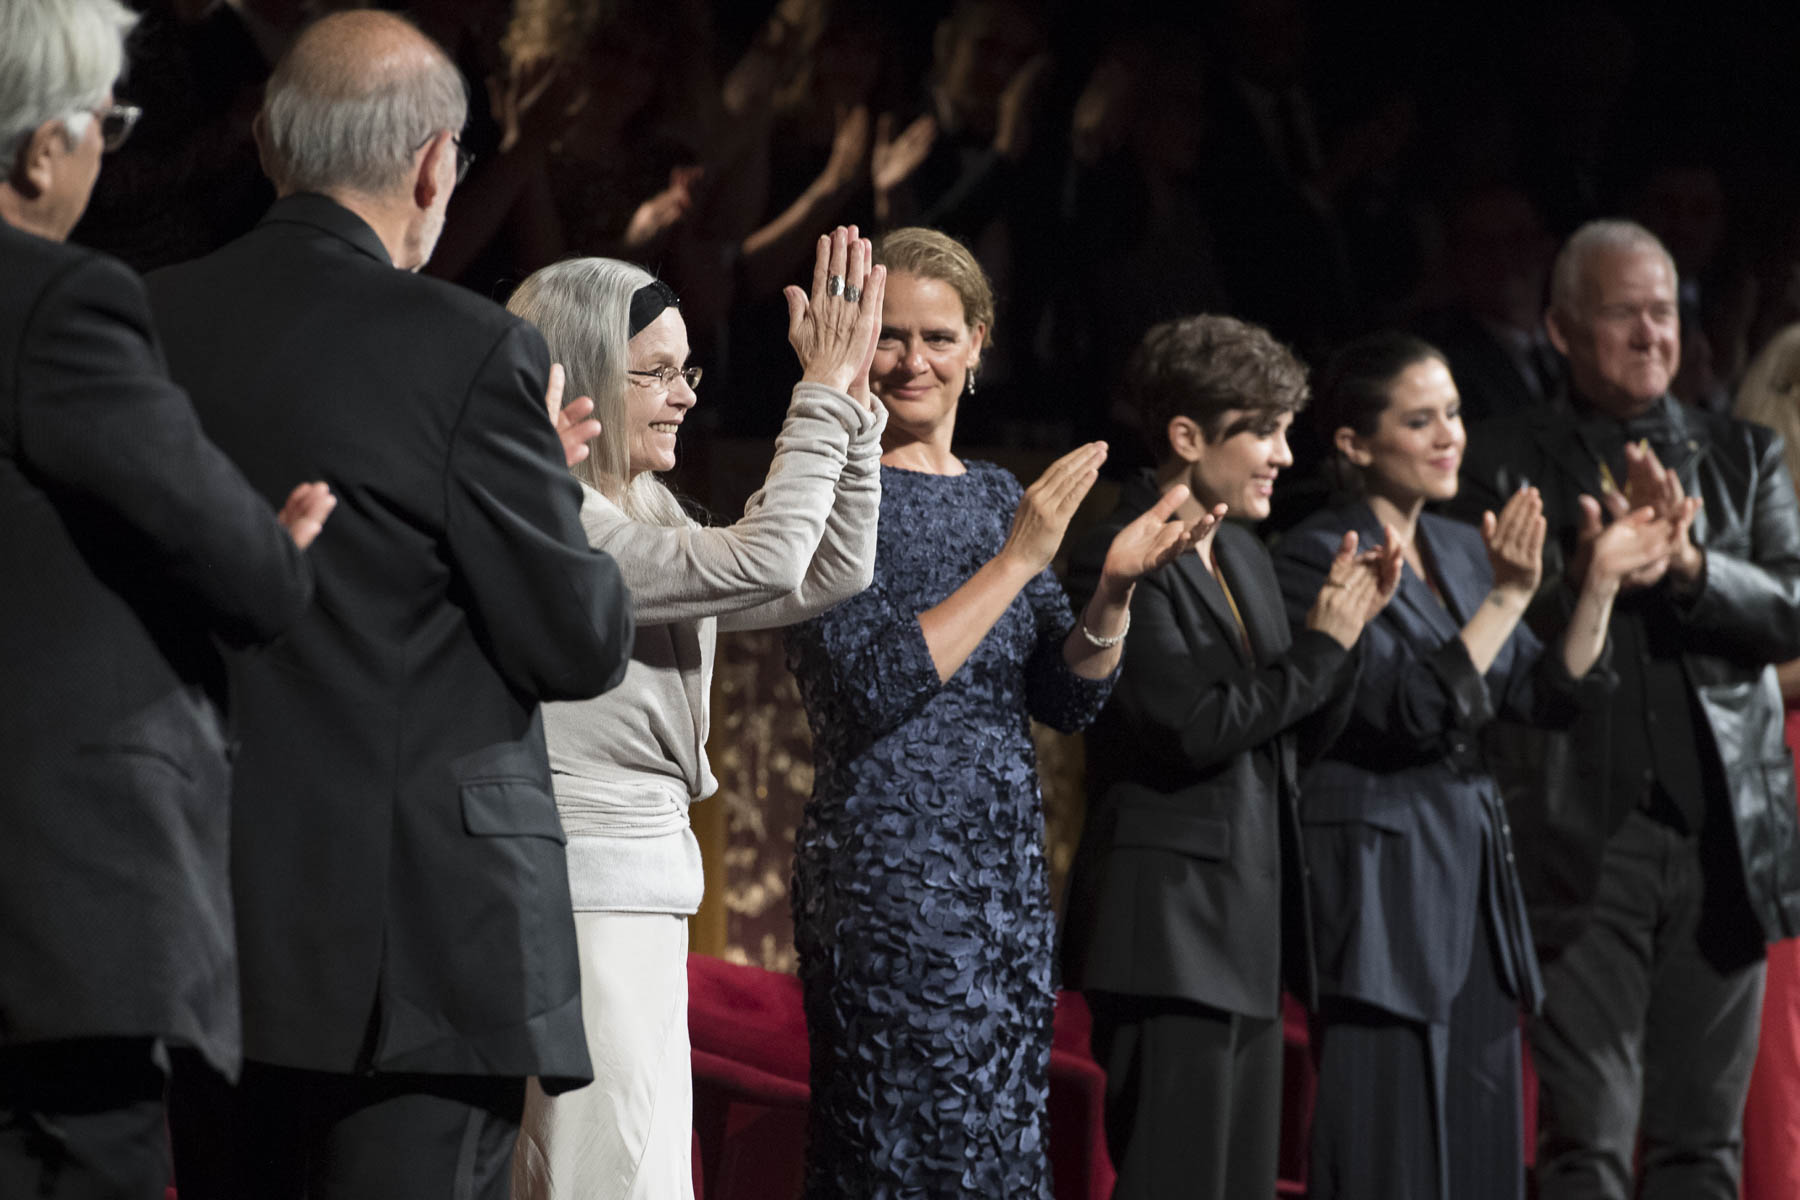 Geneviève Bujold (third from the left) is one of the 2018 recipients of the Governor General's Performing Arts Awards.